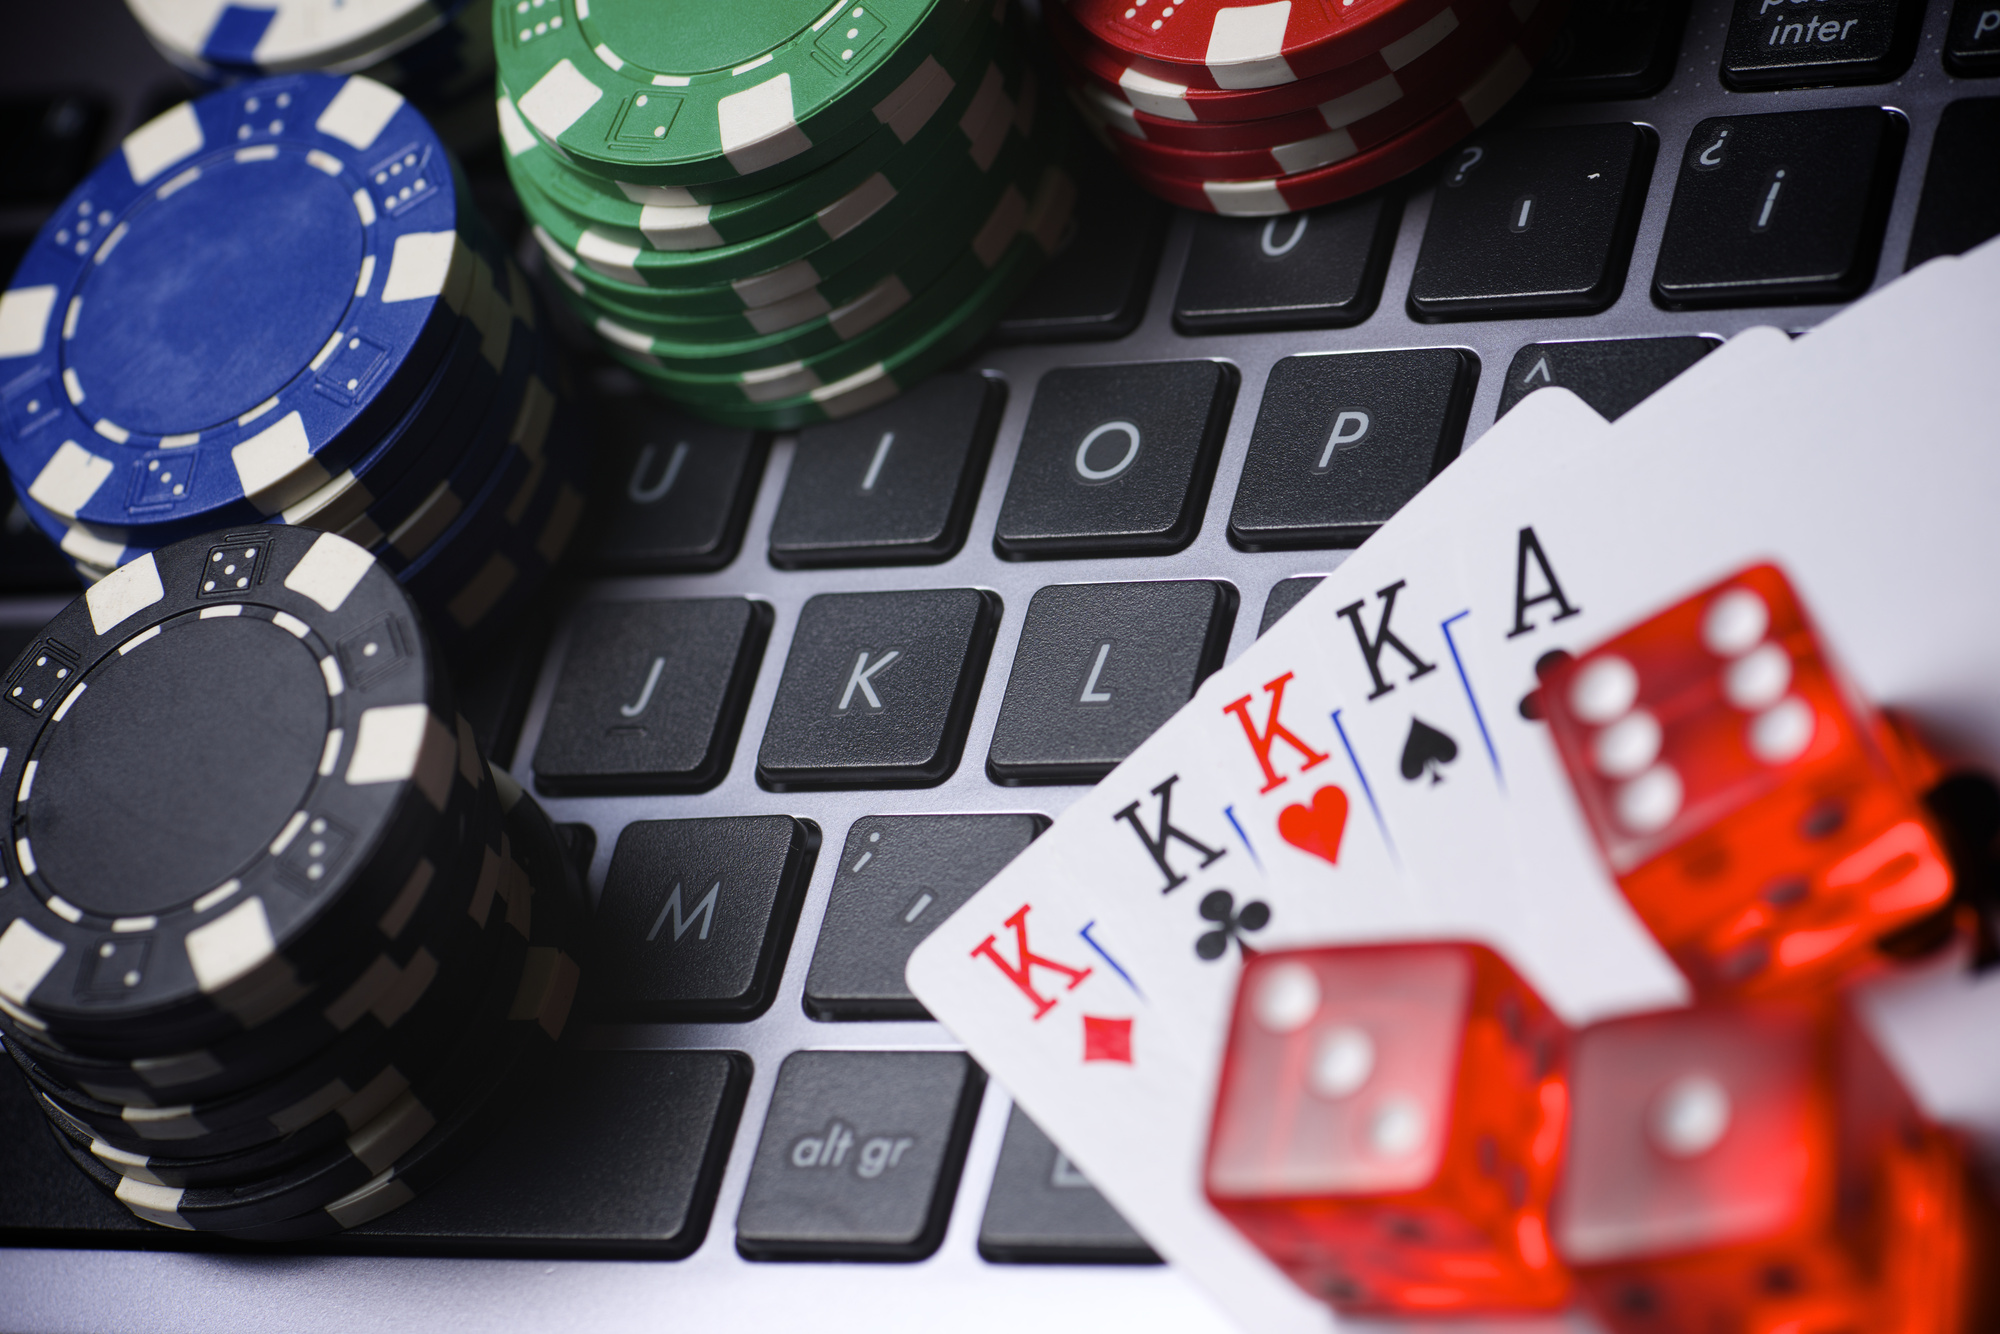 Join An Online Casino And Start Earning Real Money